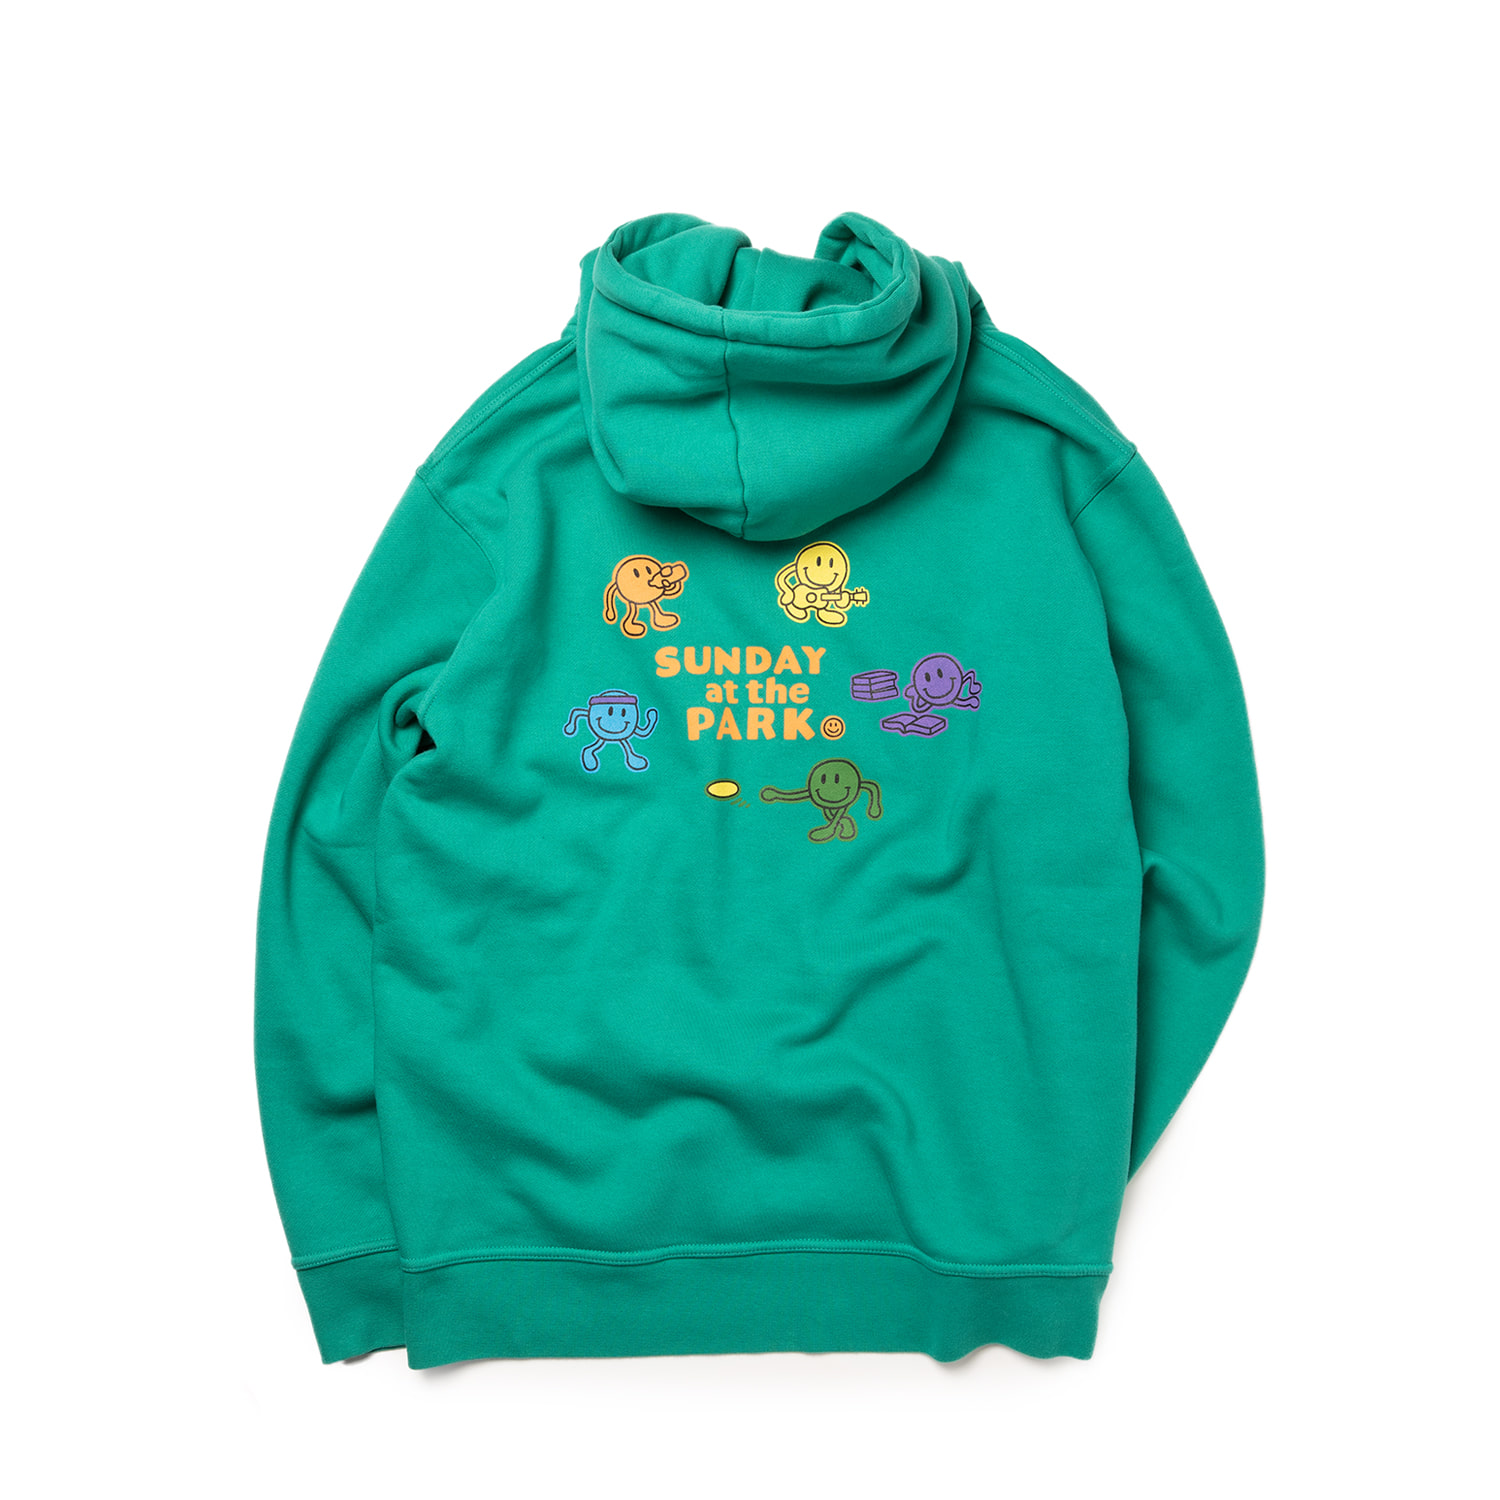 SUNDAY AT THE PARK HOODIE - EMERALD GREEN